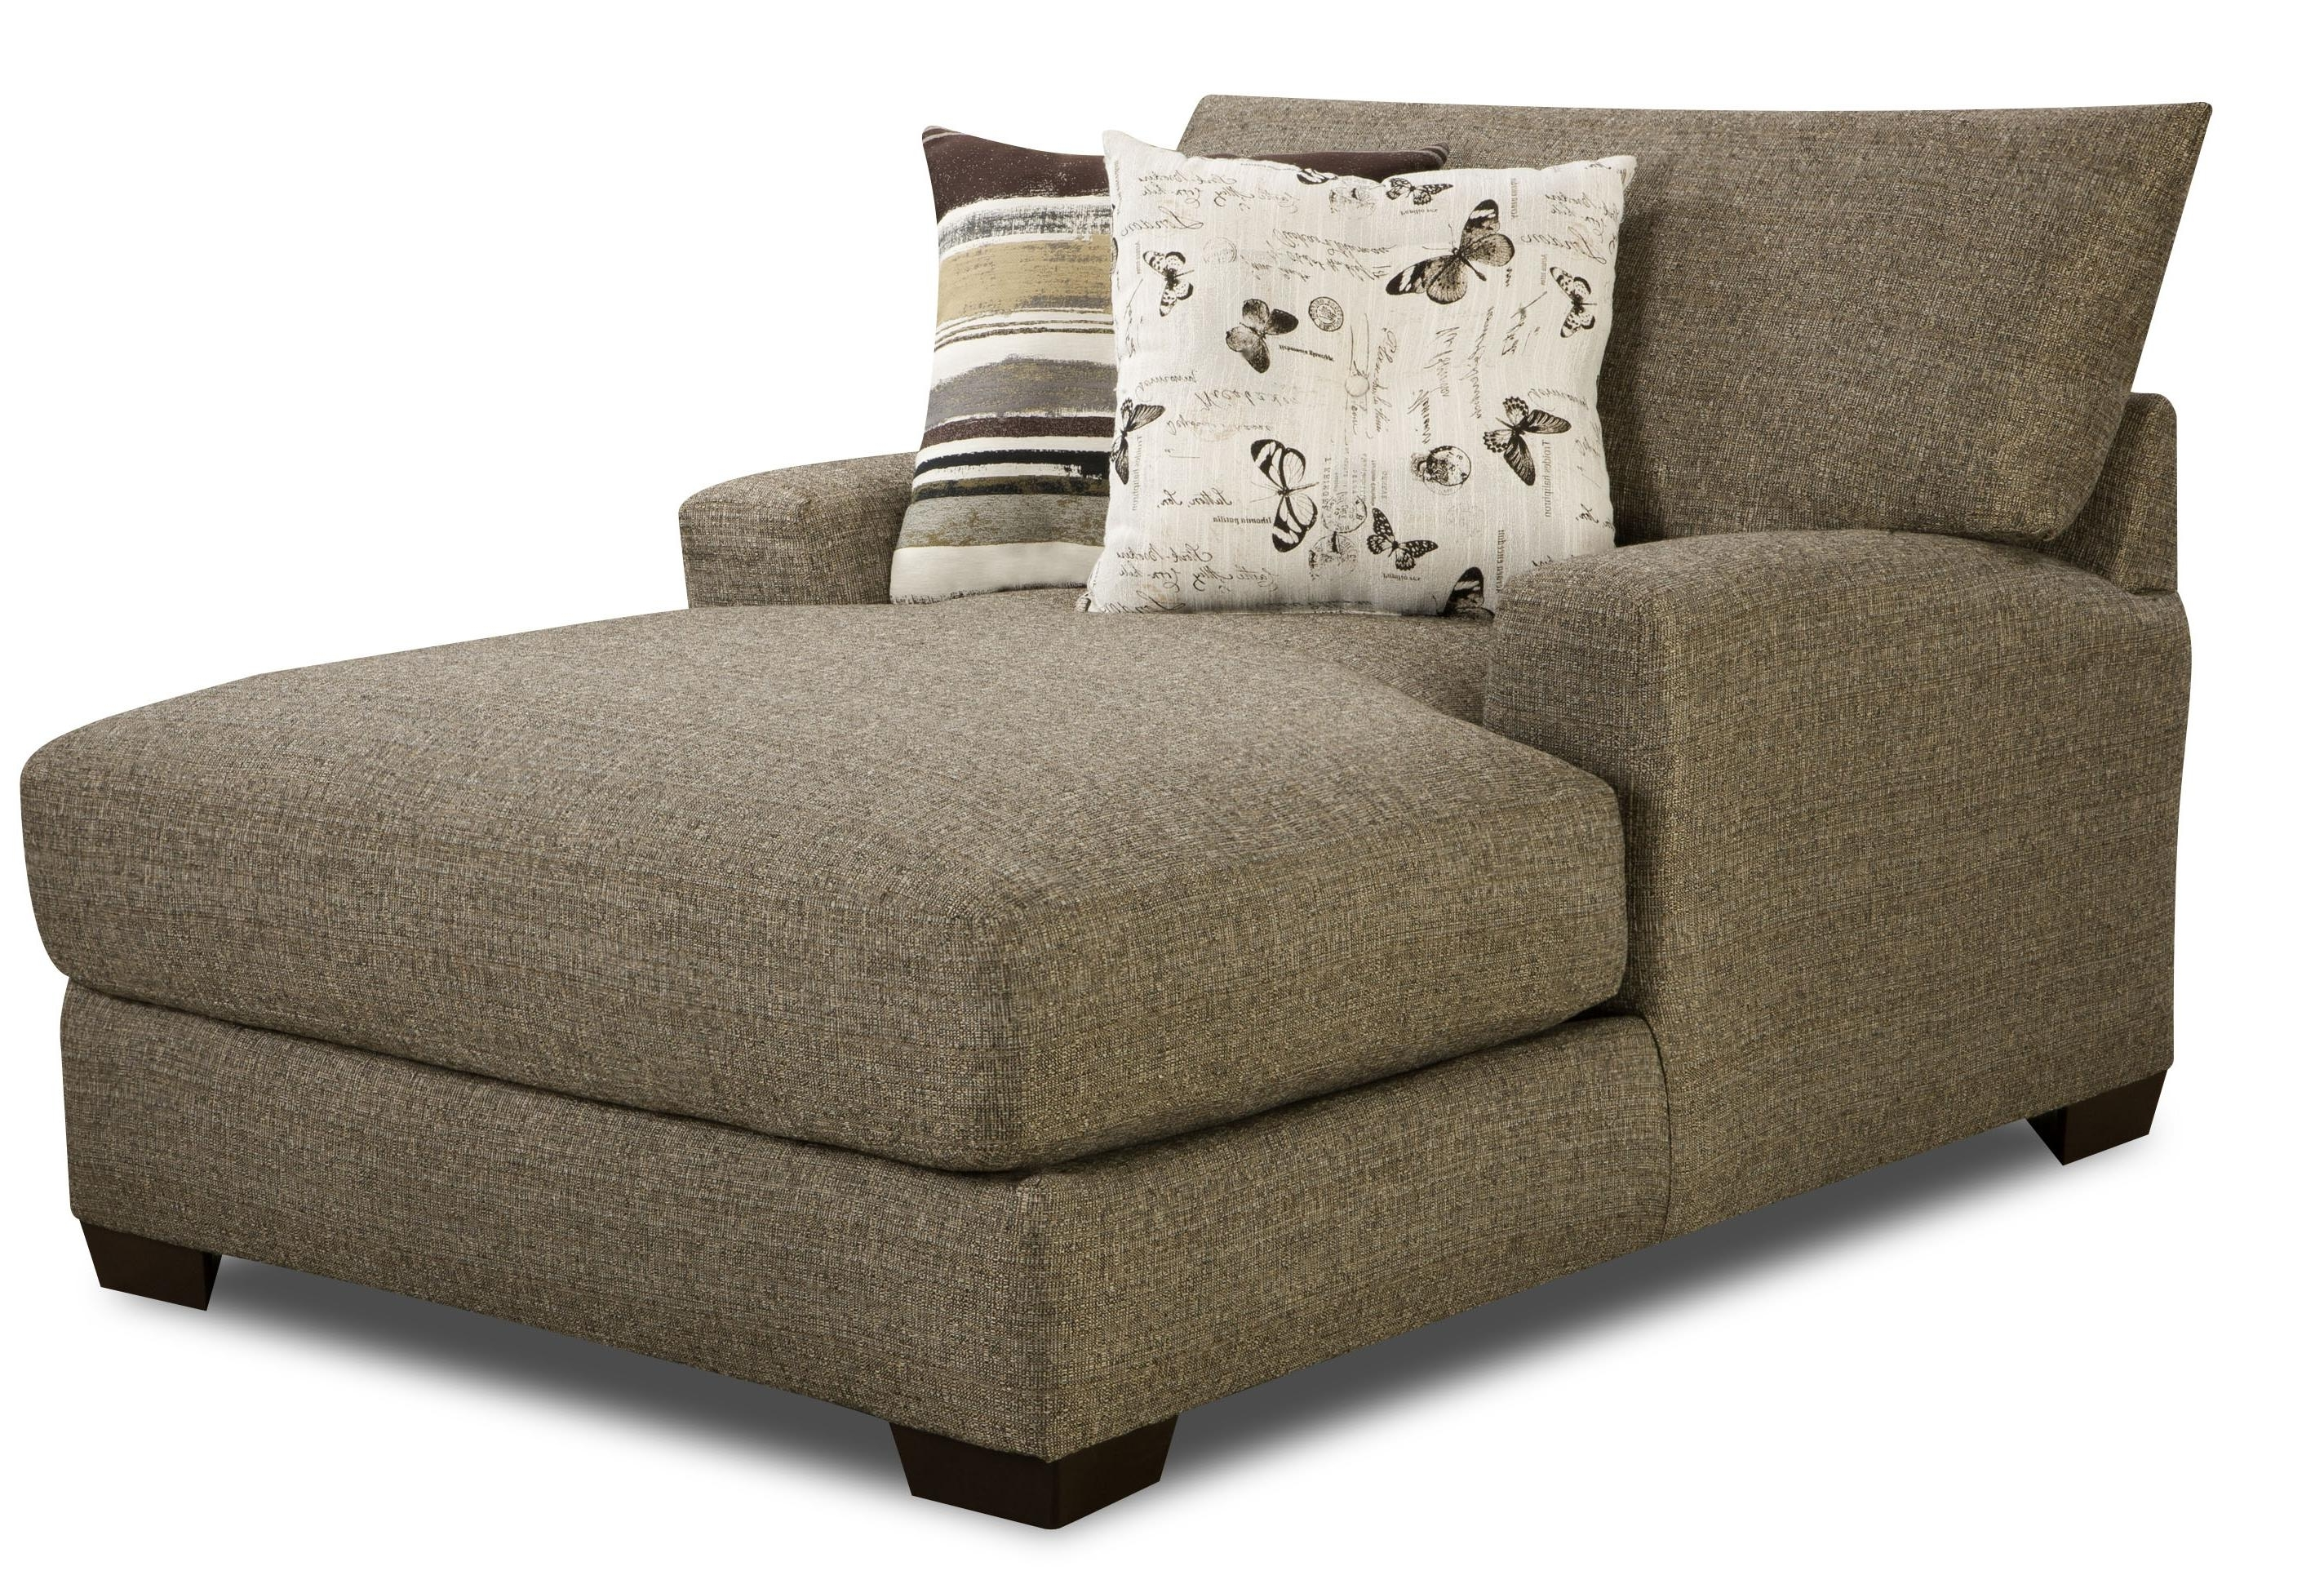 Indoor Chaise Lounge Chair Best 25 Ideas On Pinterest 12 For Well Liked Chaise Lounge Chairs Made In Usa (View 10 of 15)